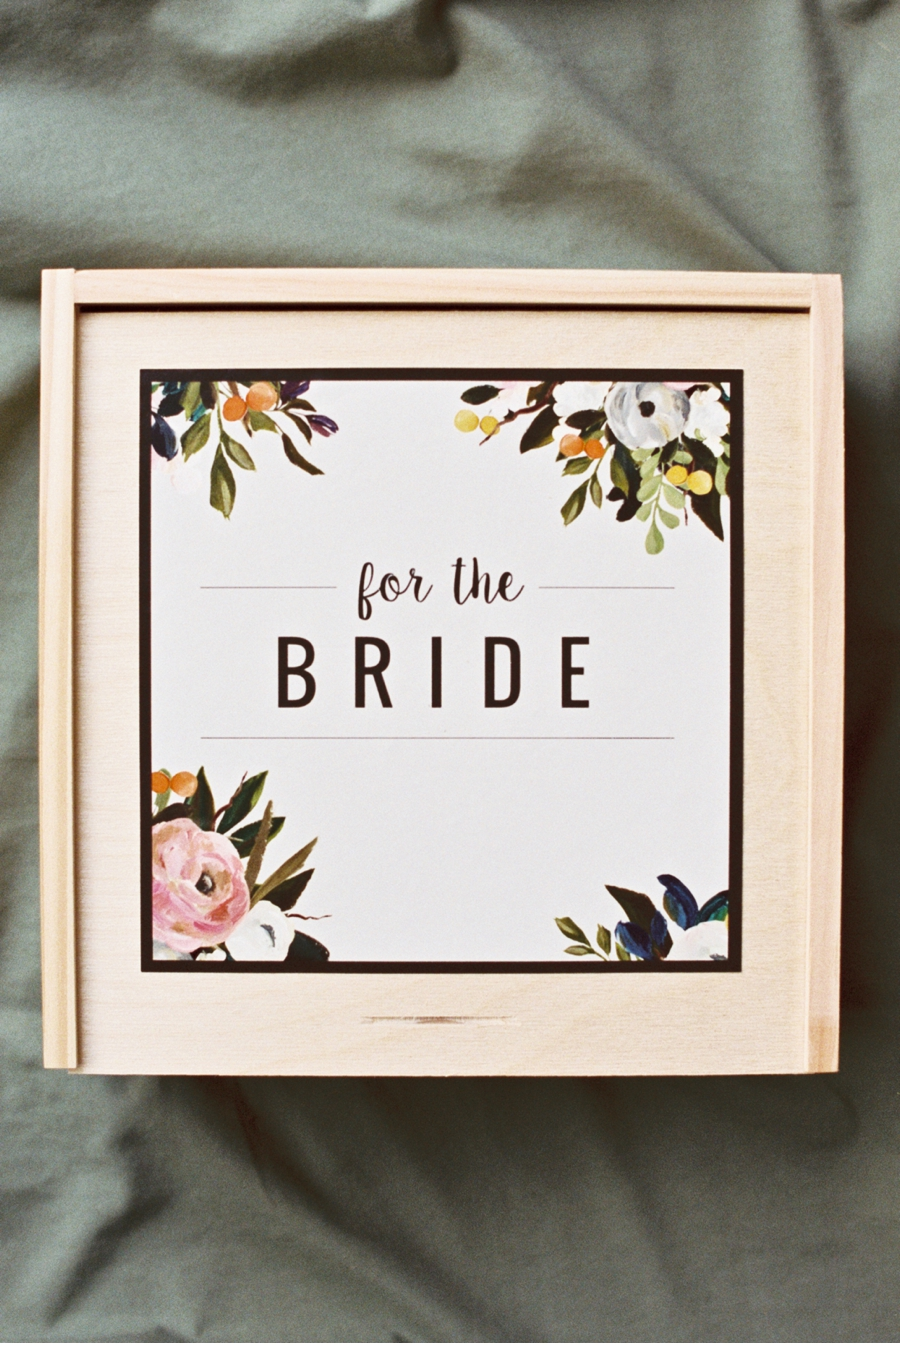 Luxury-Gifts-for-Brides